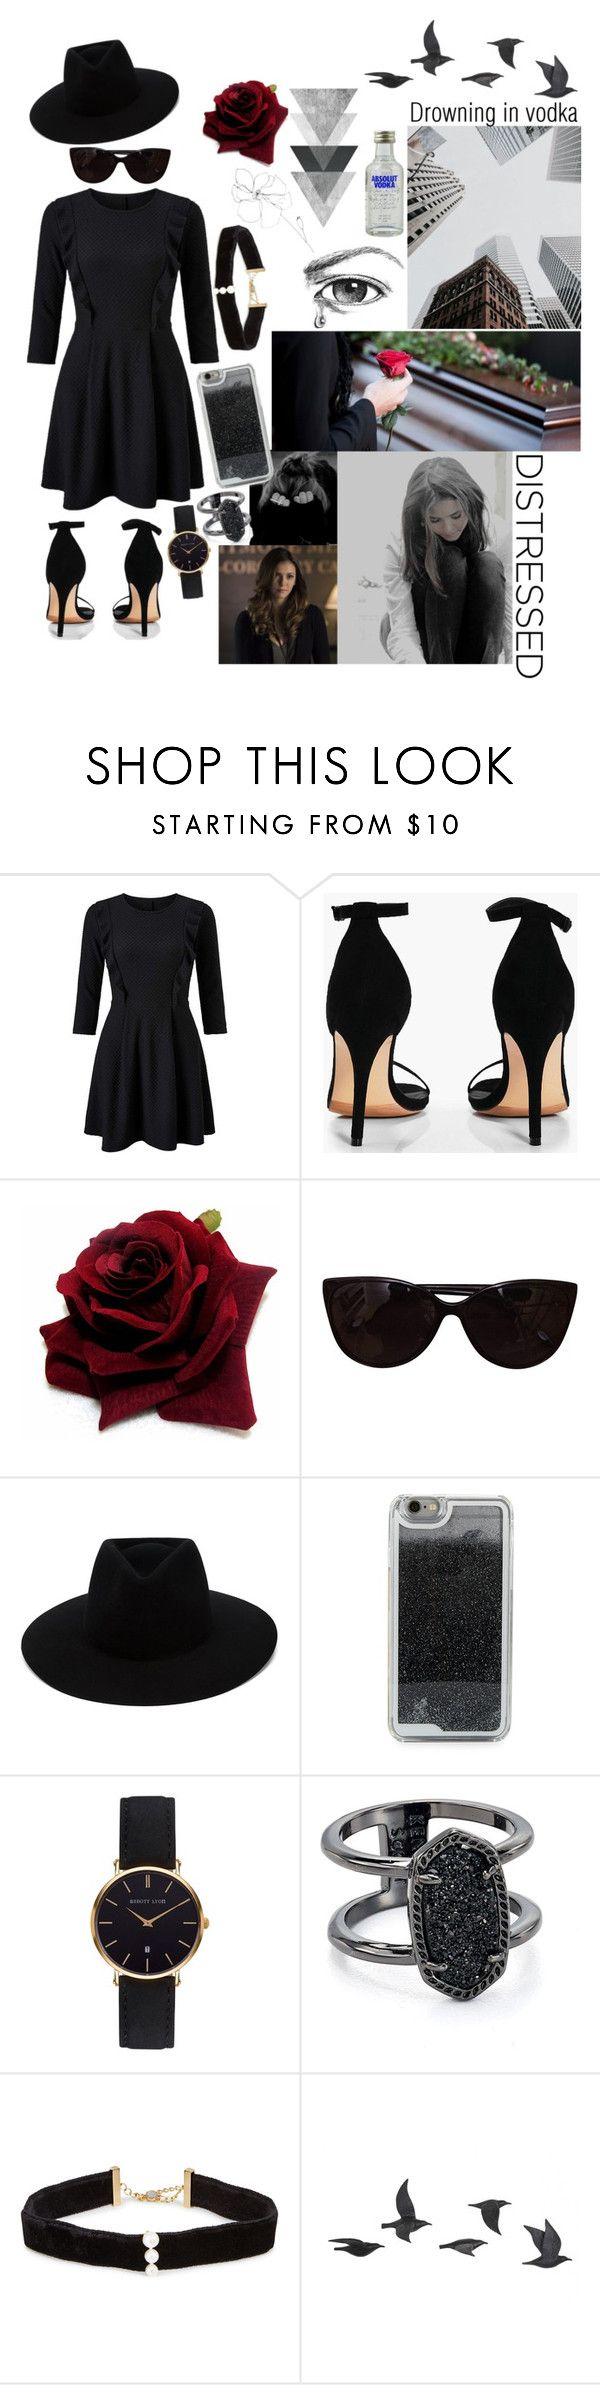 """Gabby dressed for Ivy's funeral"" by holly-jauregui ❤ liked on Polyvore featuring Miss Selfridge, Boohoo, Tiffany & Co., rag & bone, LMNT, Abbott Lyon, Kendra Scott, Anissa Kermiche, Jayson Home and Blume"